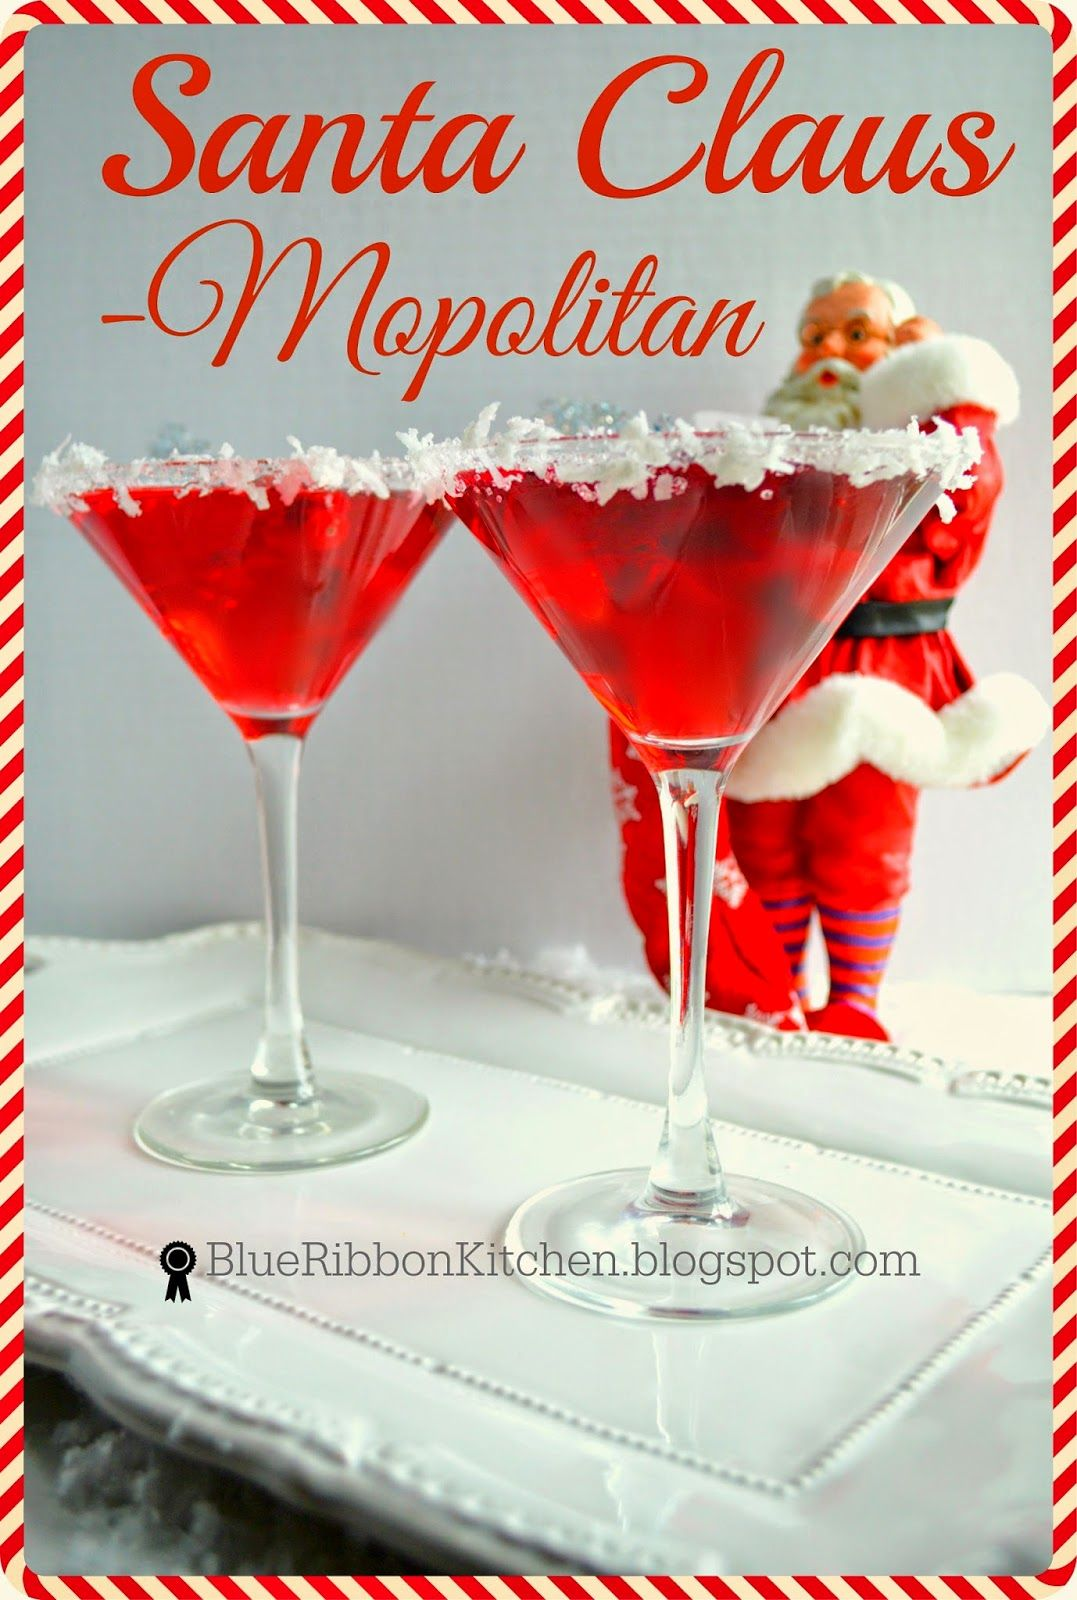 Blue Ribbon Kitchen: Santa Claus-Mopolitan: A signature holiday drink.  Holiday party drinks for Christmas